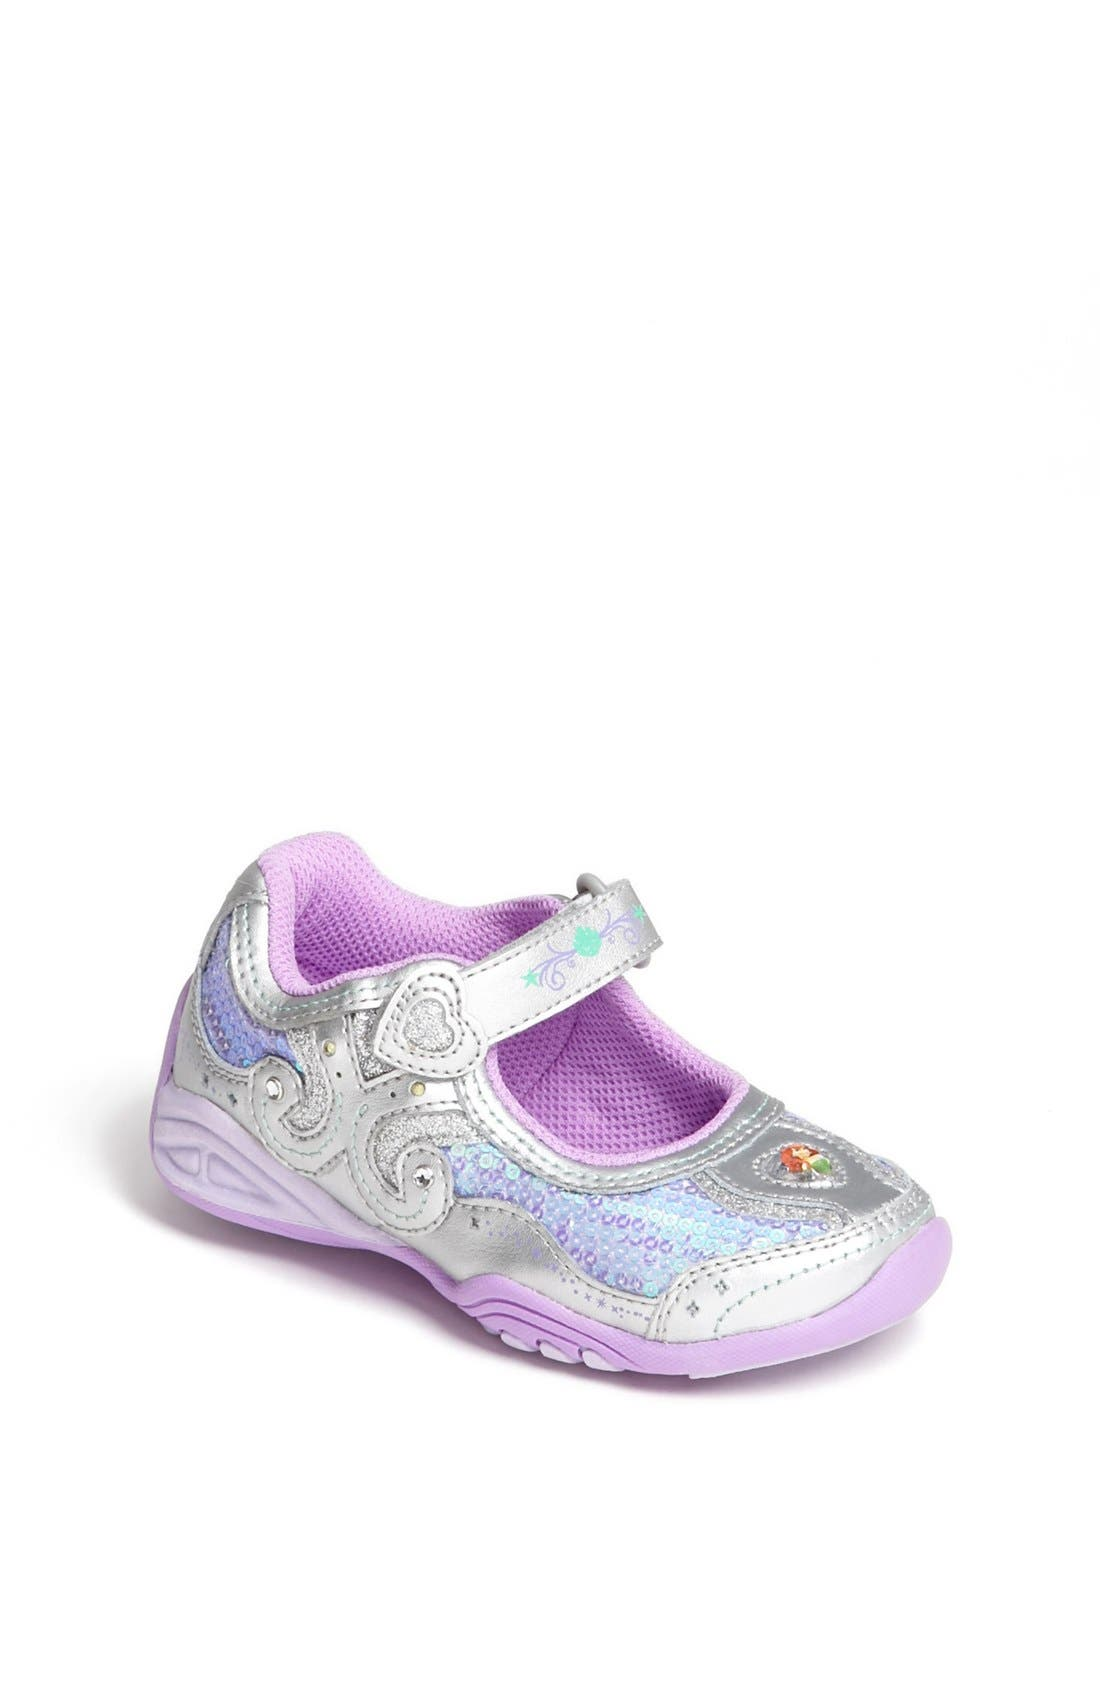 Main Image - Stride Rite 'Disney Wish Lights  - Ariel'  Sneaker (Toddler & Little Kid)